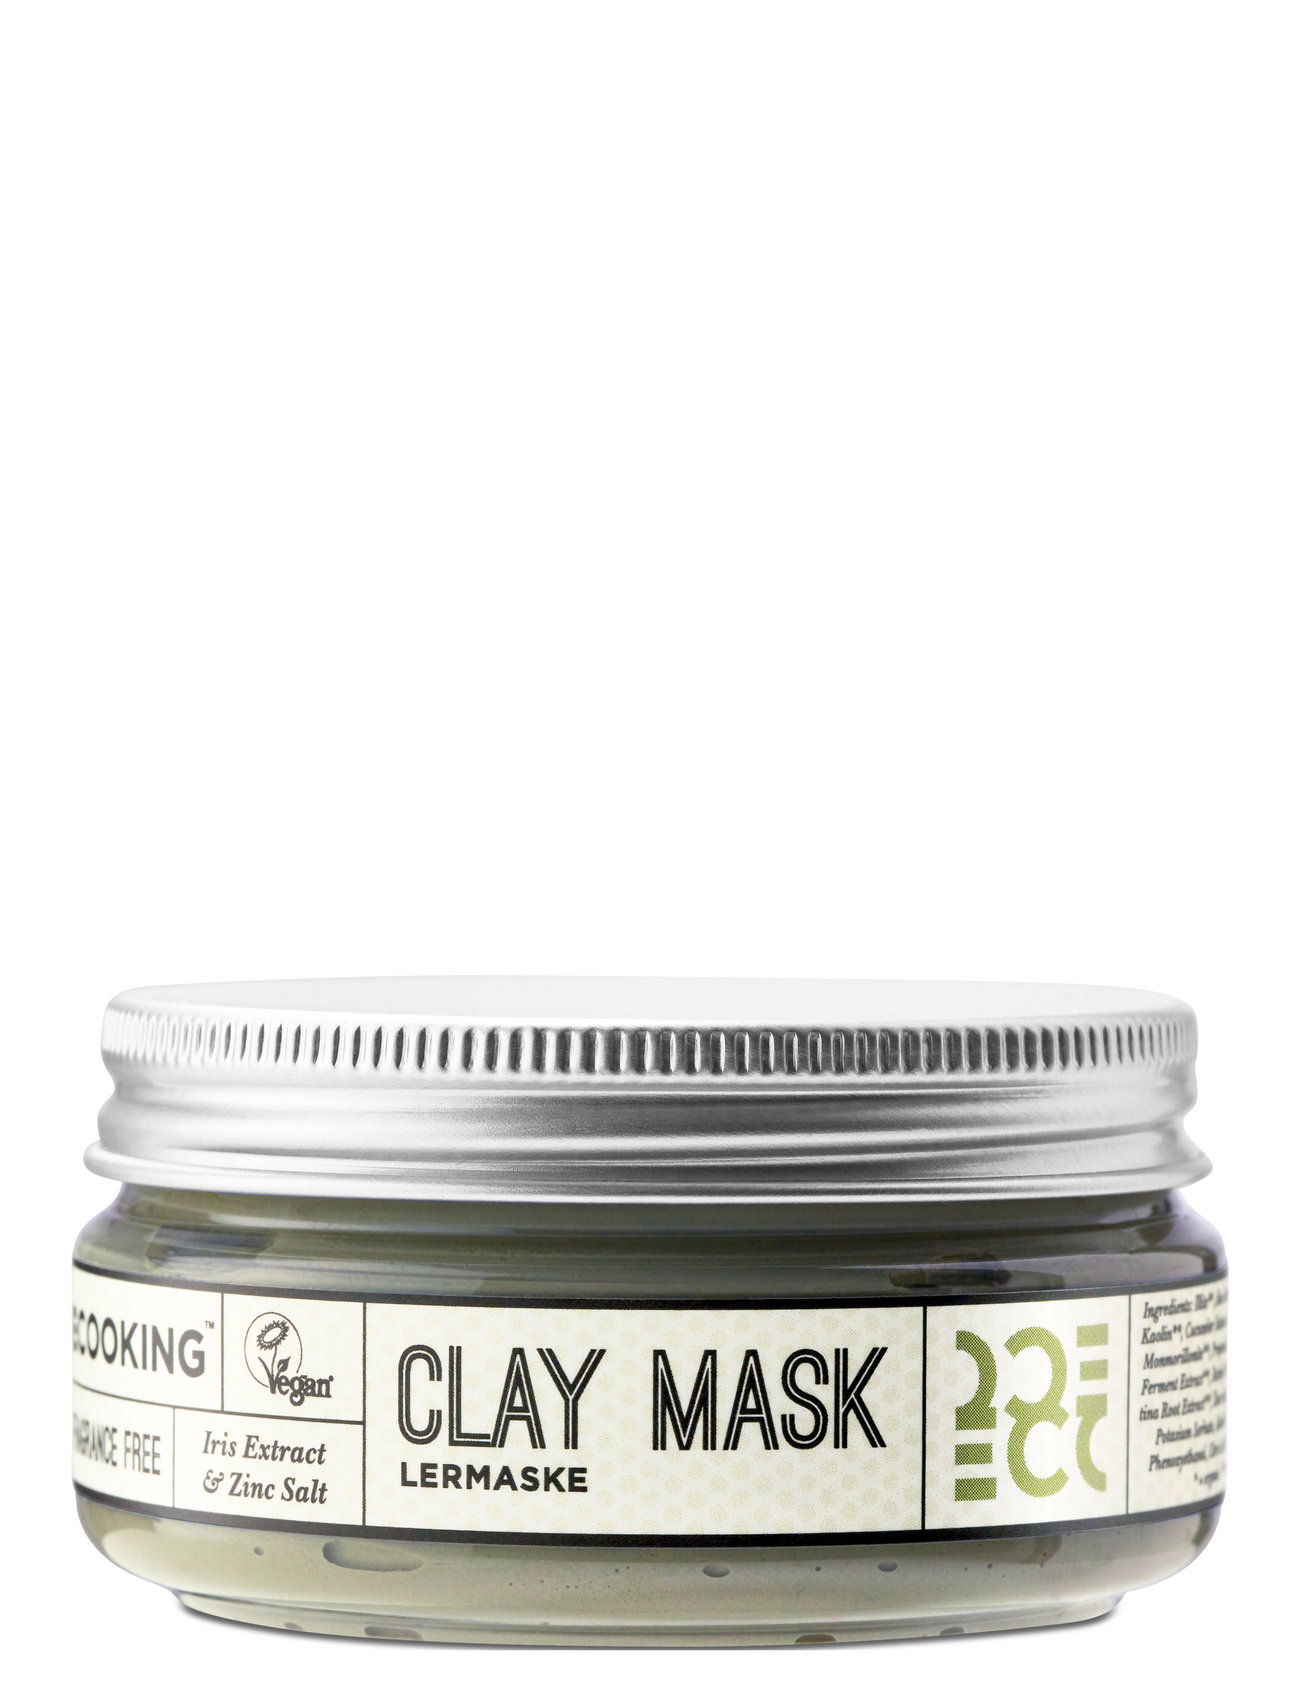 Image of Clay Mask Beauty WOMEN Skin Care Face Face Masks Nude Ecooking (3337001665)